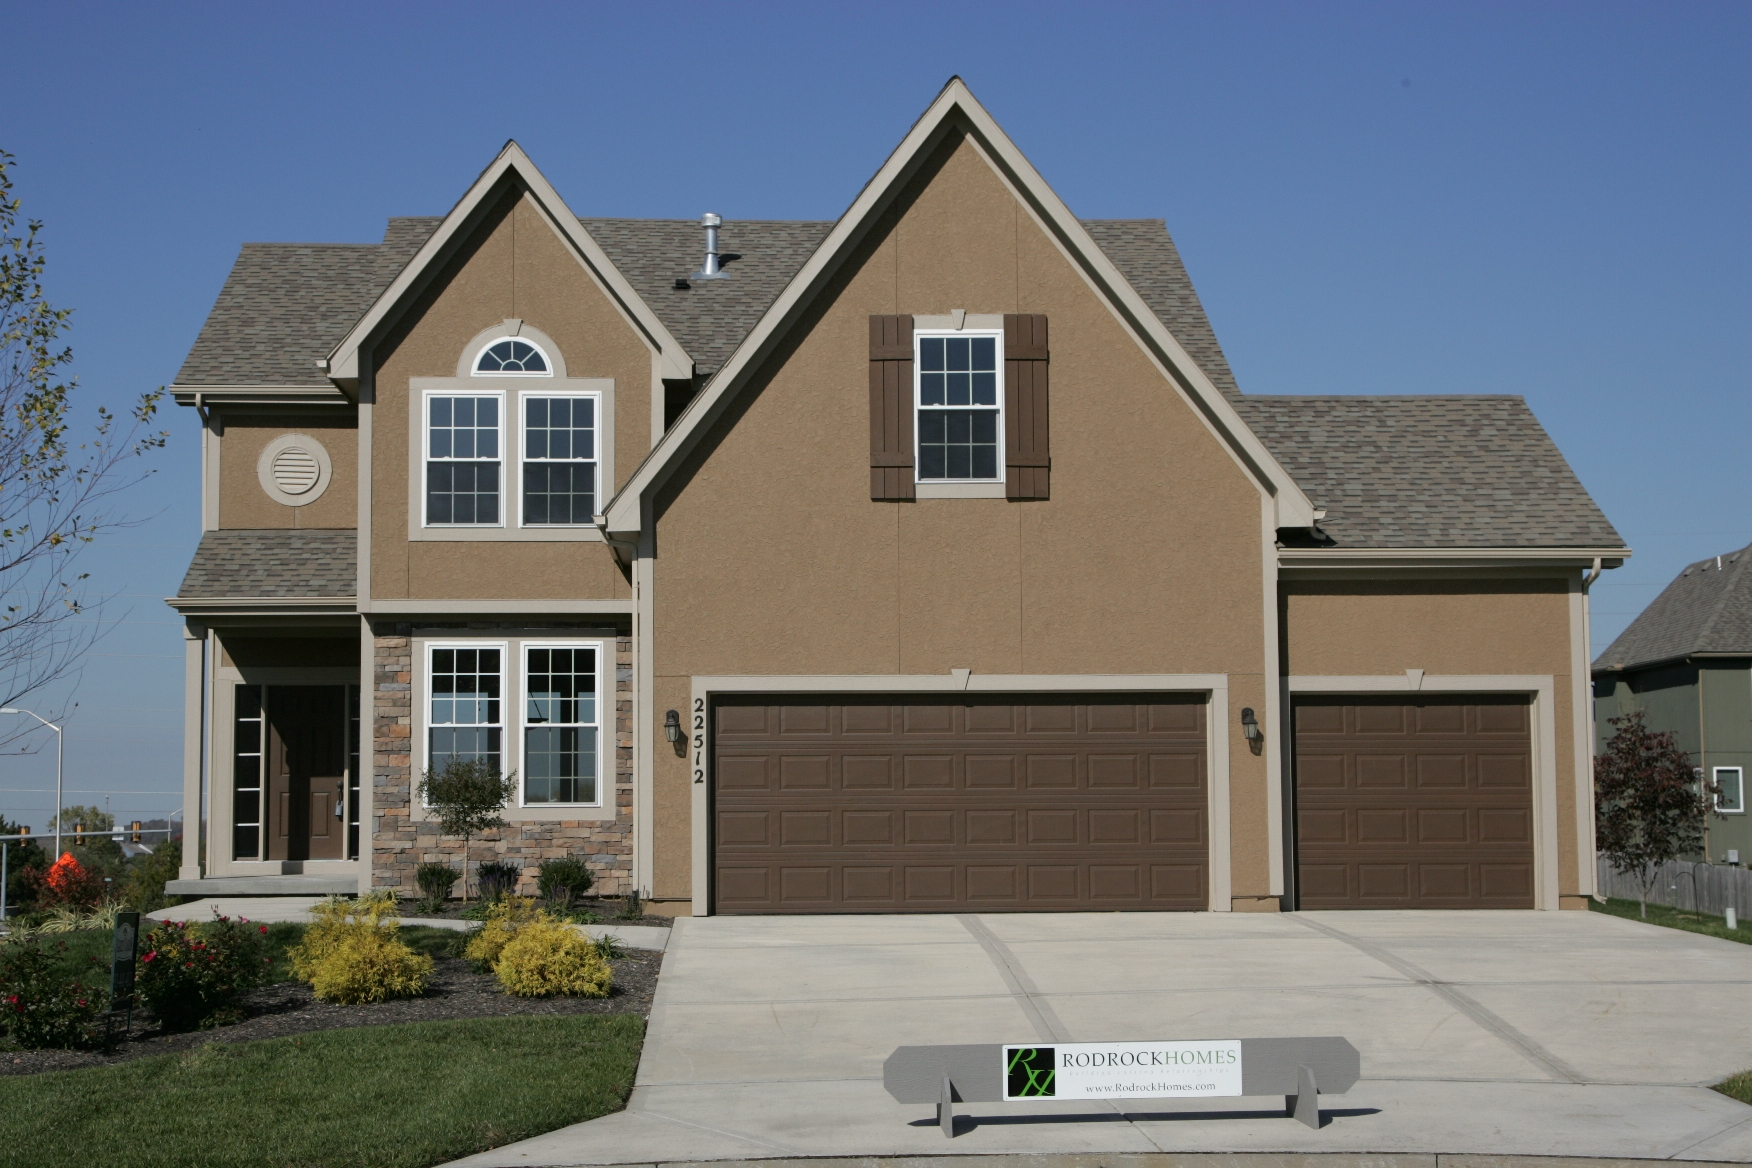 Rodrock Homes Helping New Home Buyers Take A Walk In The Park